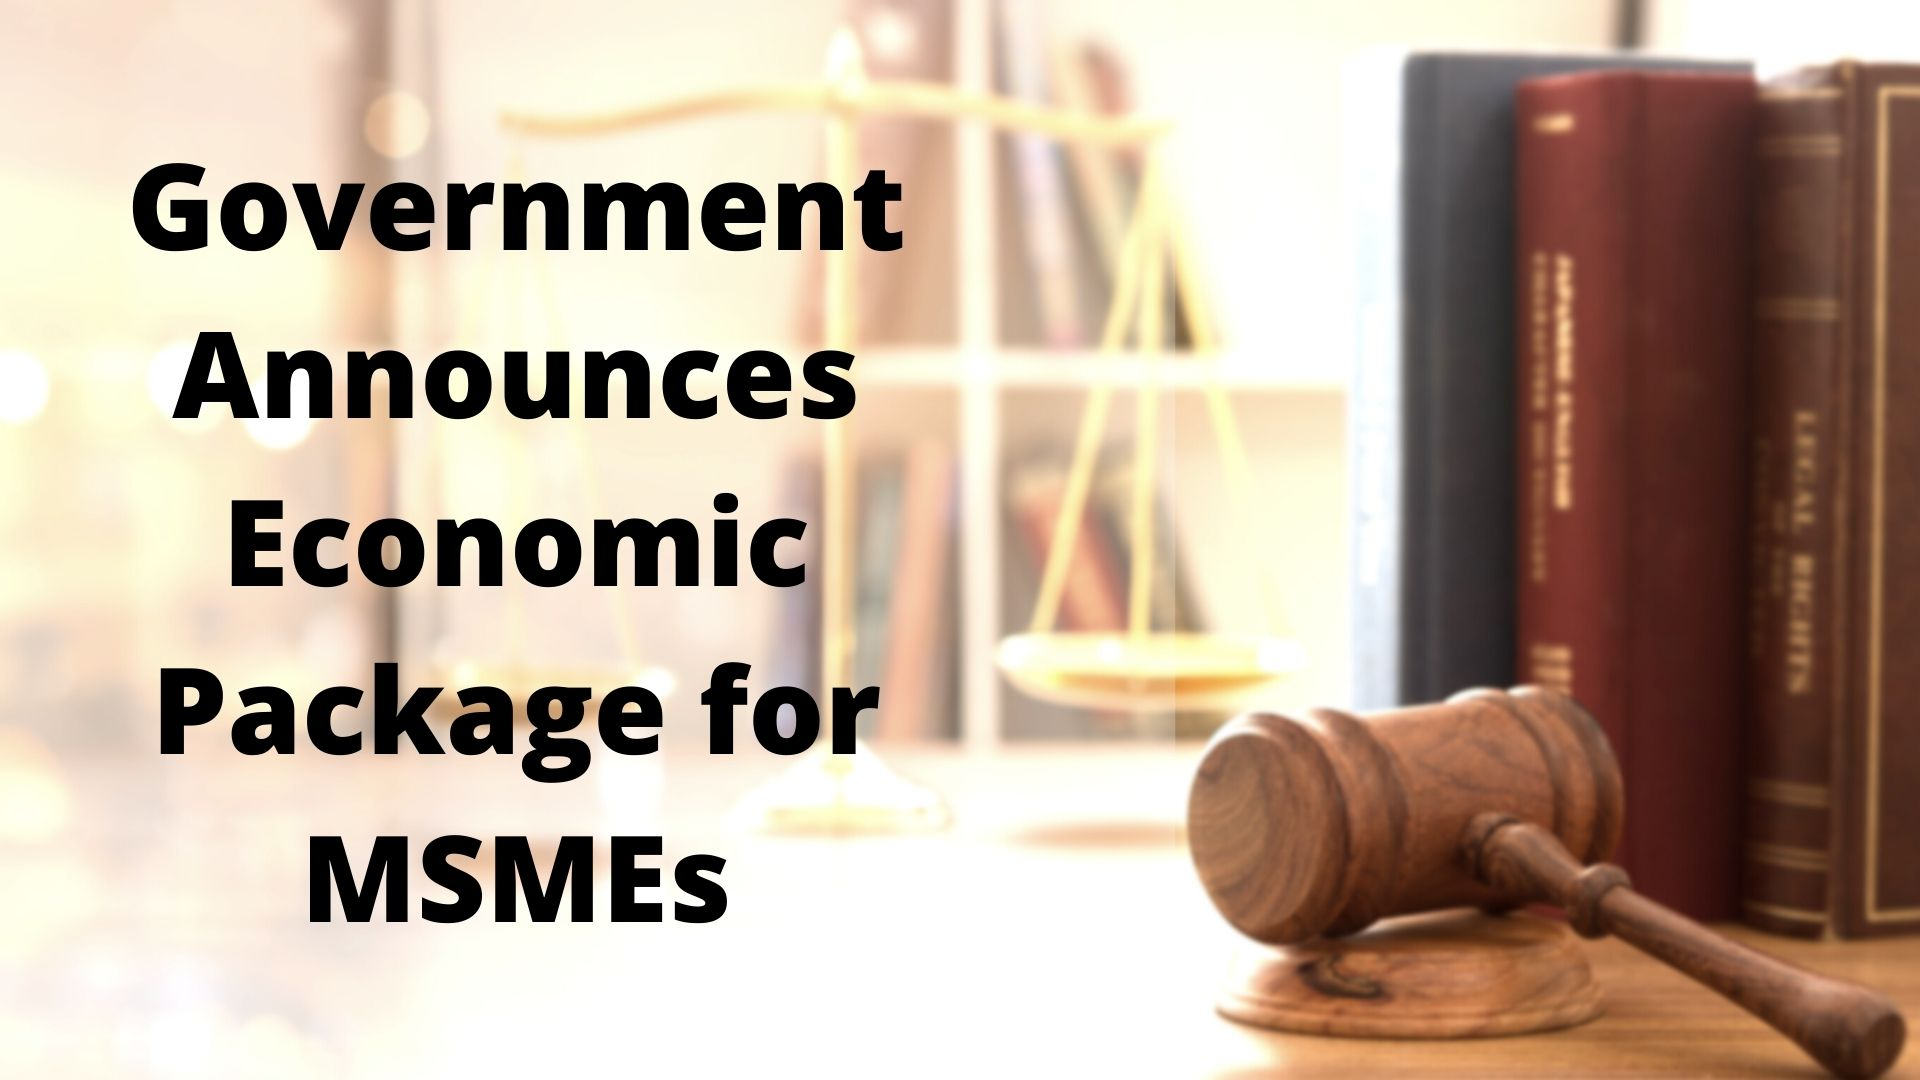 Government Announces Economic Package for MSMEs